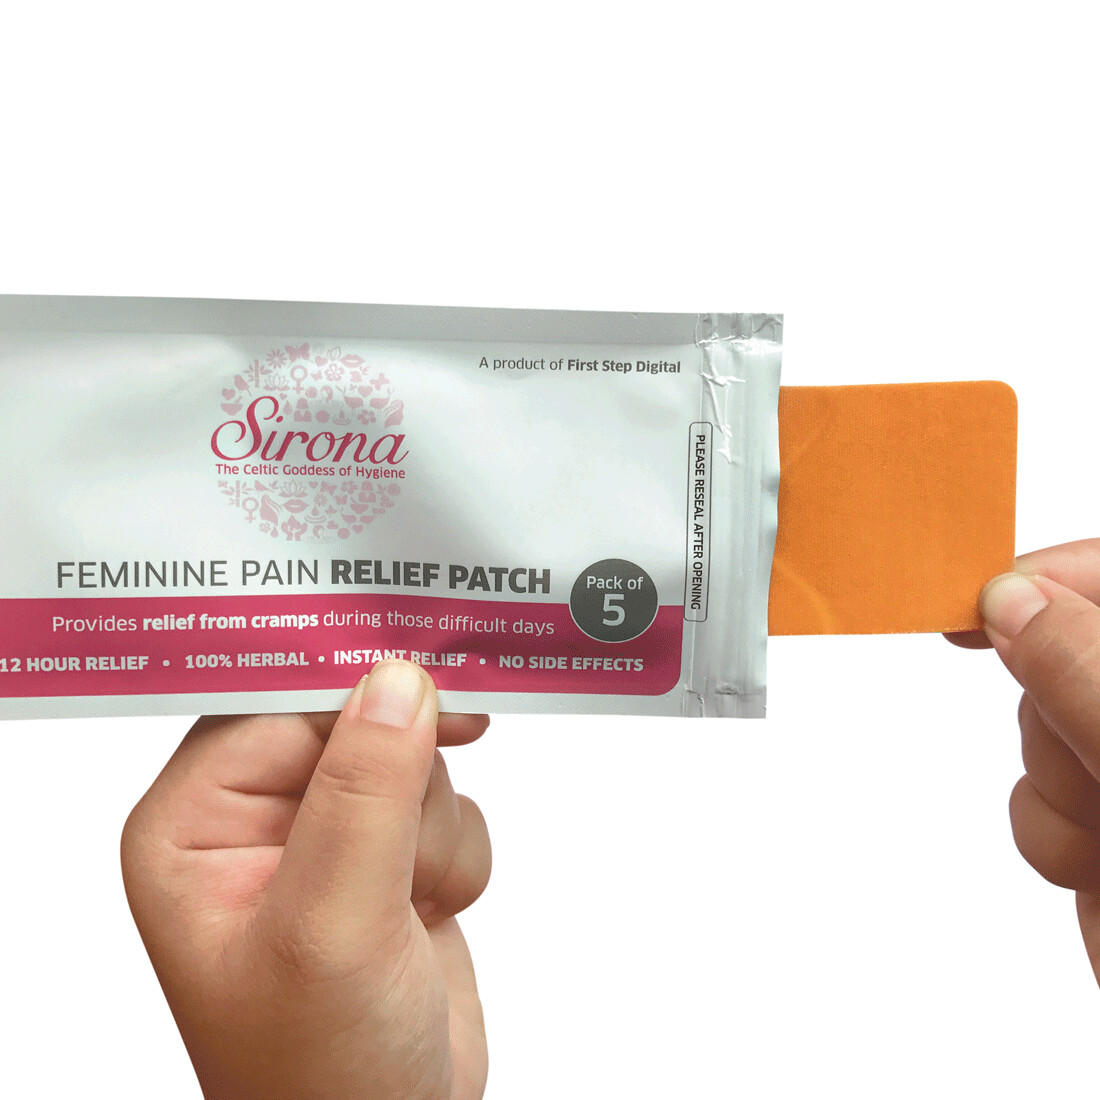 Sirona Feminine Pain Relief Patches - 5 Patches (1 Pack - 5 Patches Each)